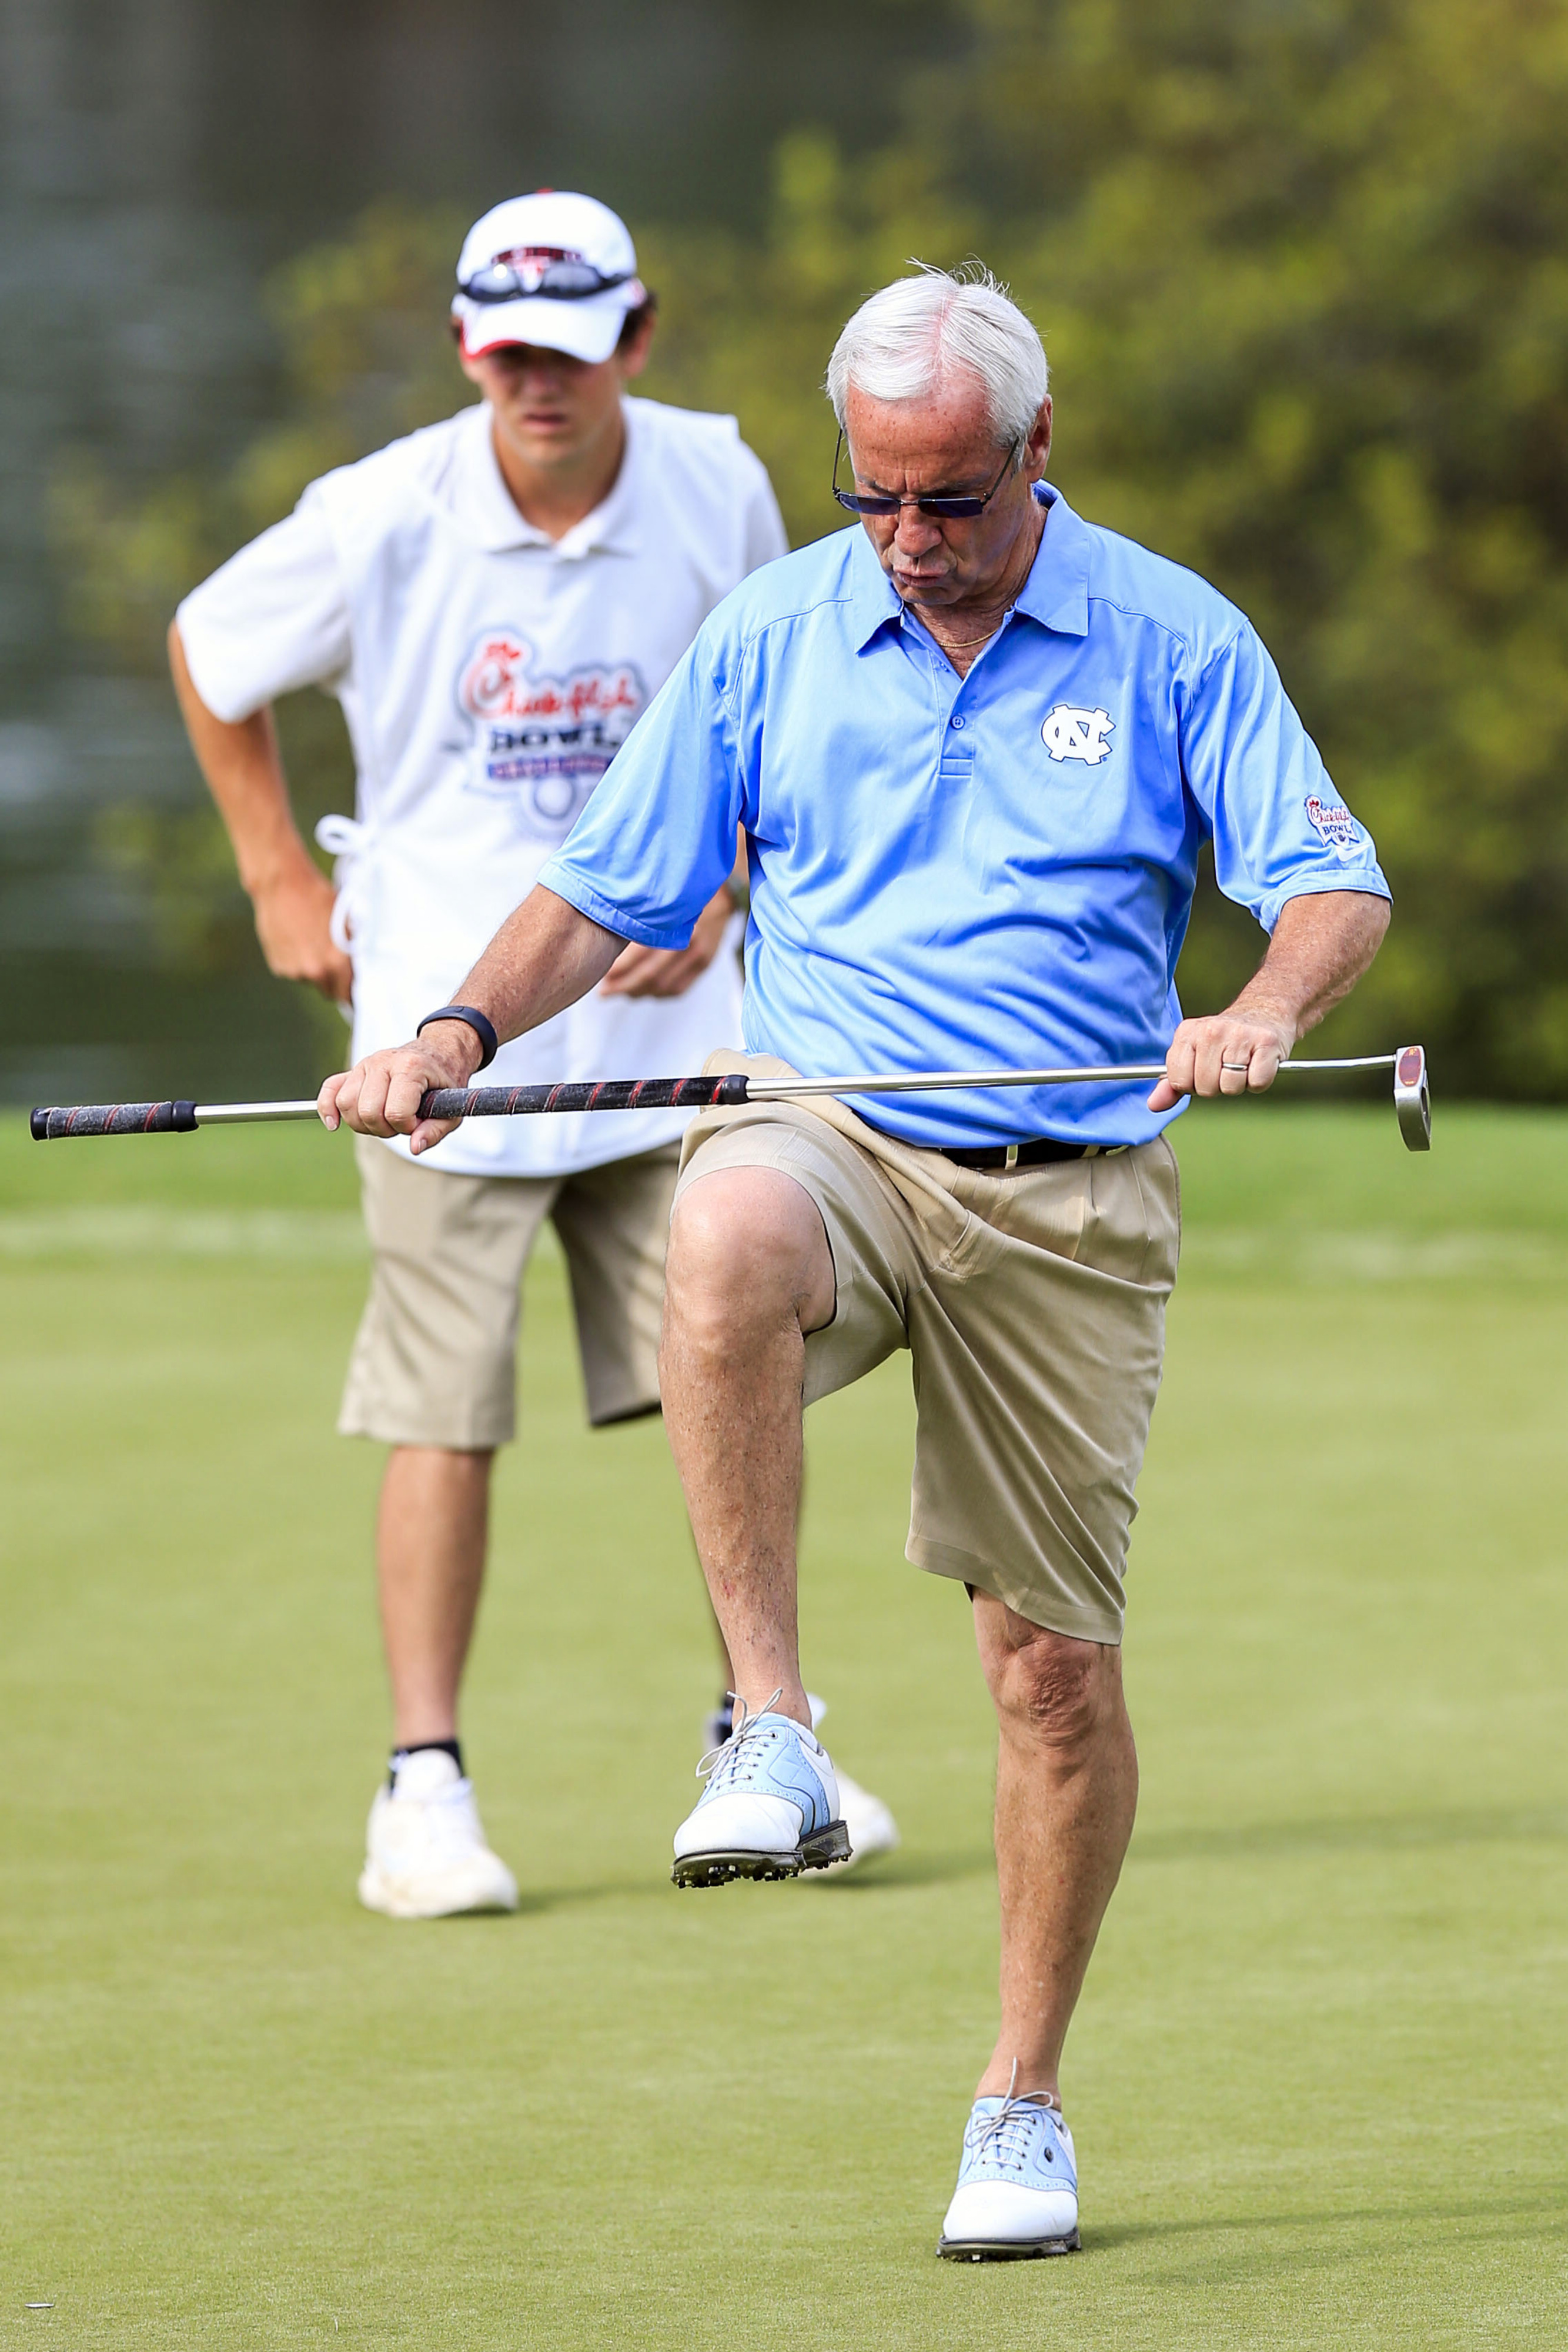 Roy Williams probably wishes he could just focus on his putting this summer